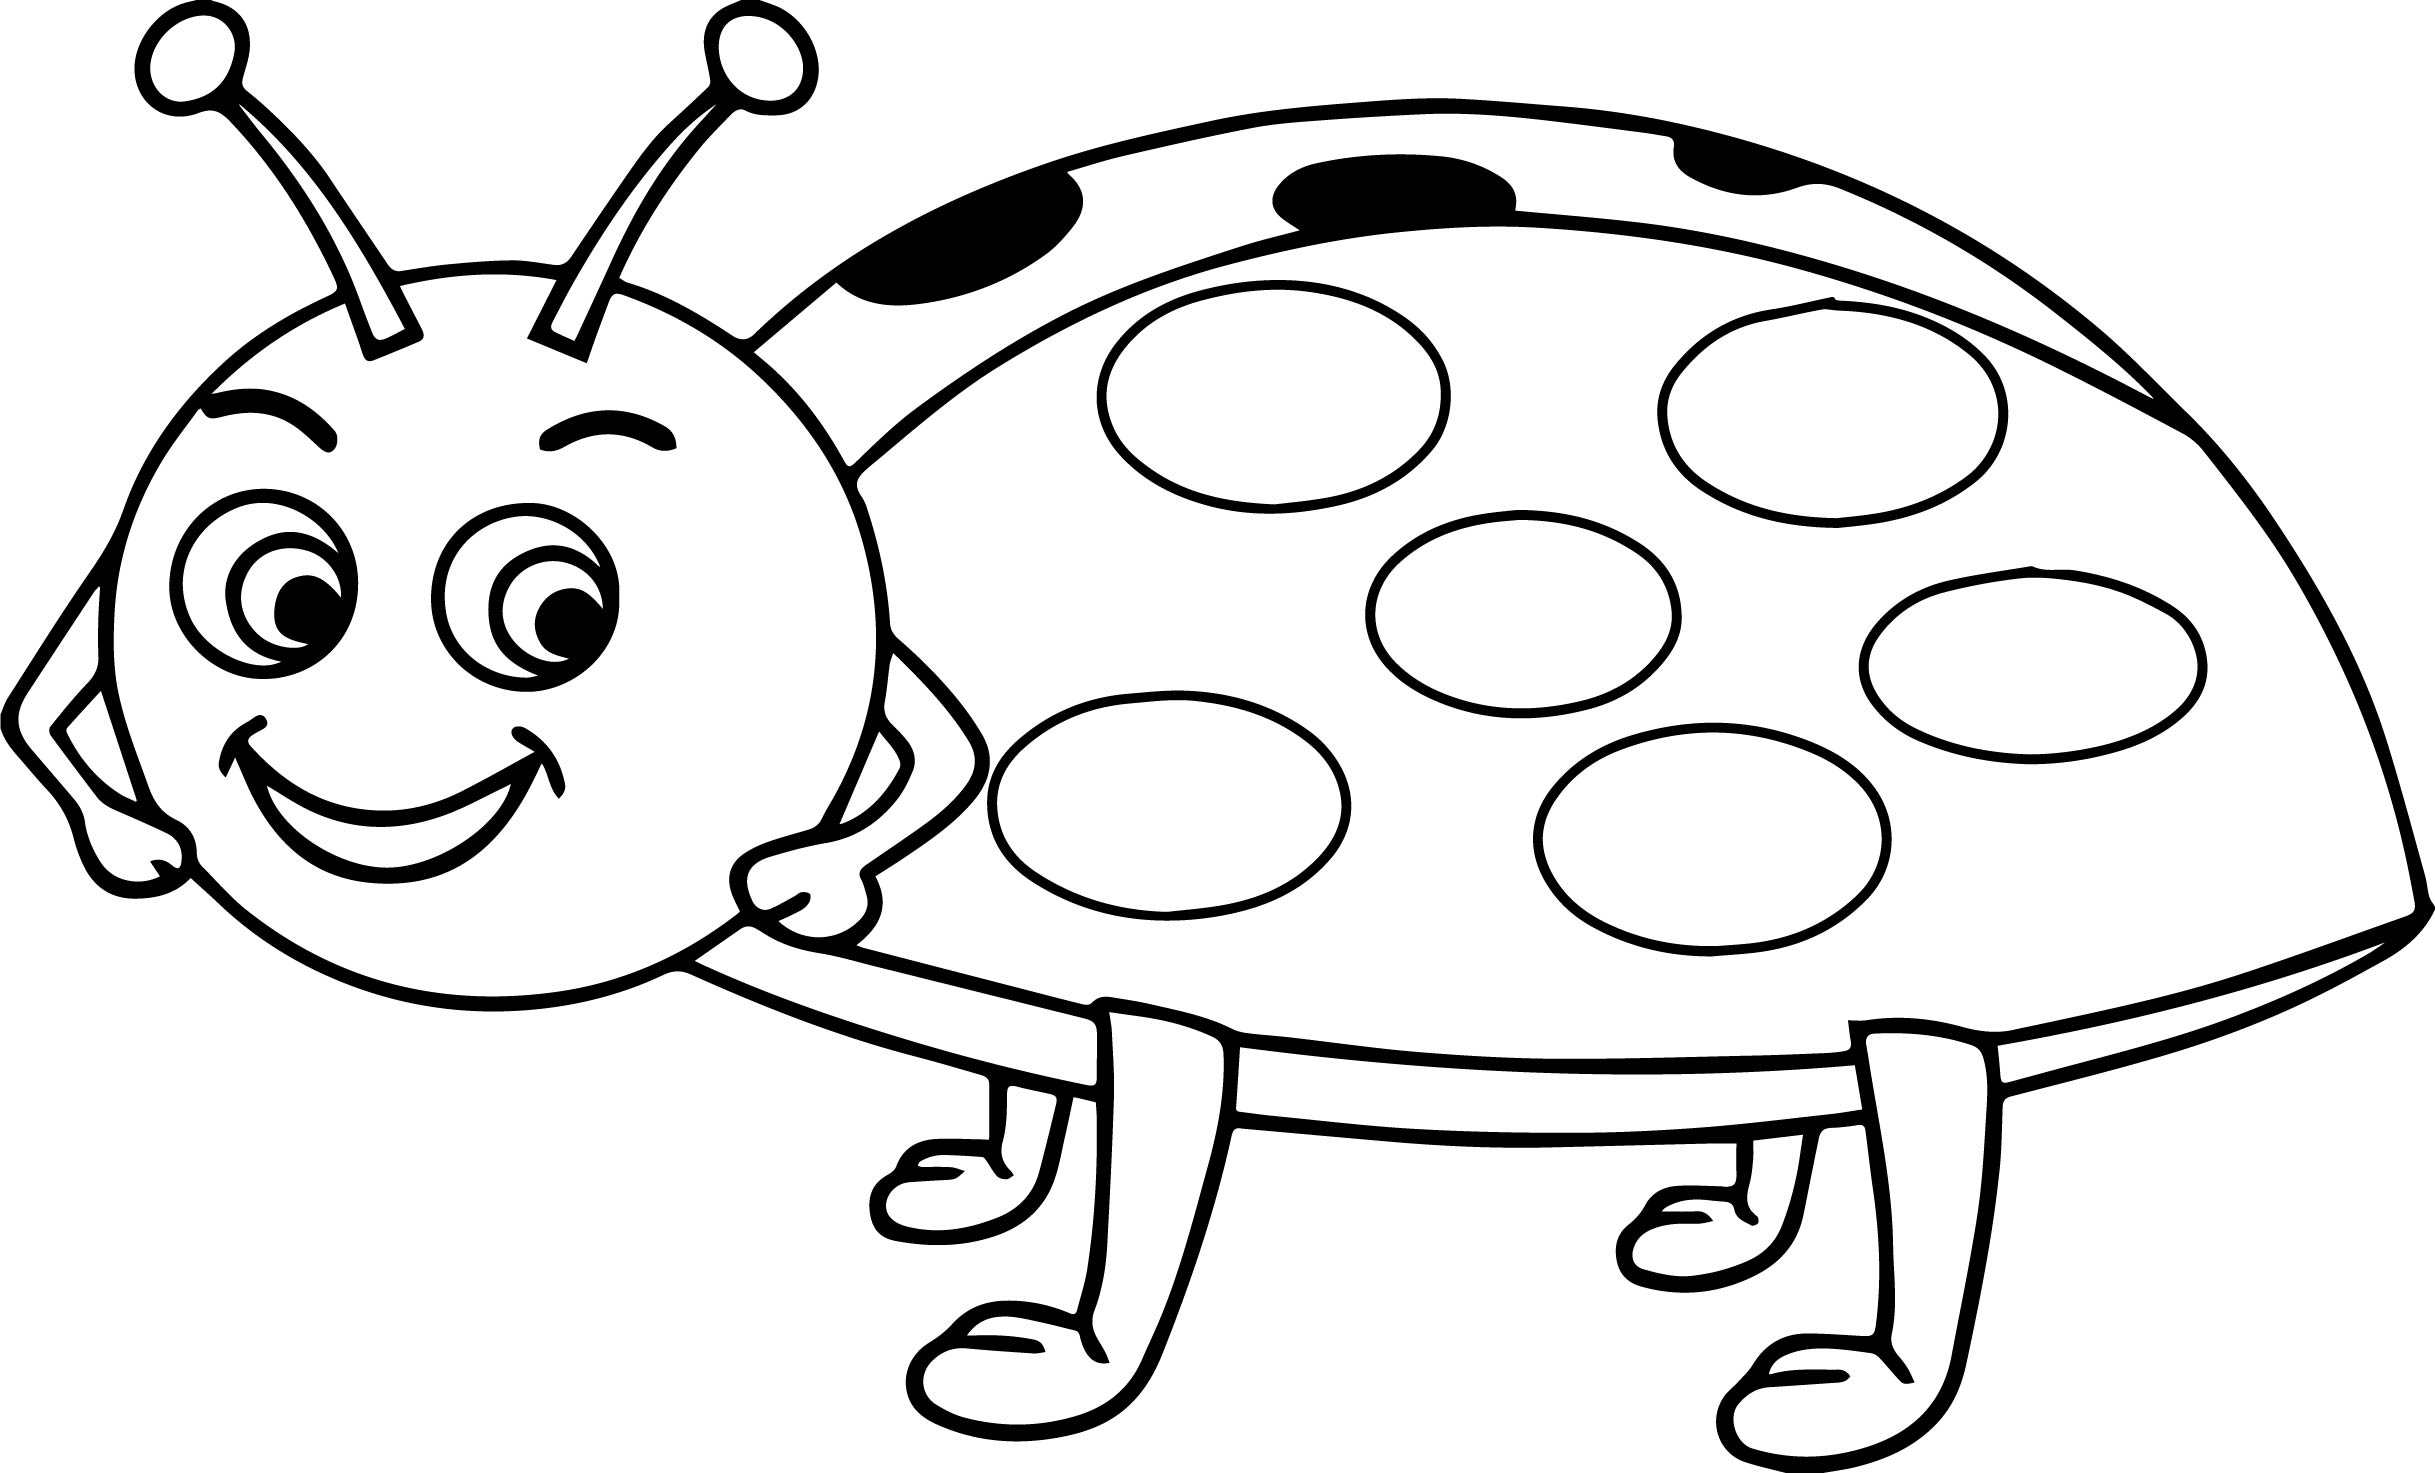 cartoon ladybug coloring pages | Cartoon Cute Ladybug Coloring Page | Wecoloringpage.com